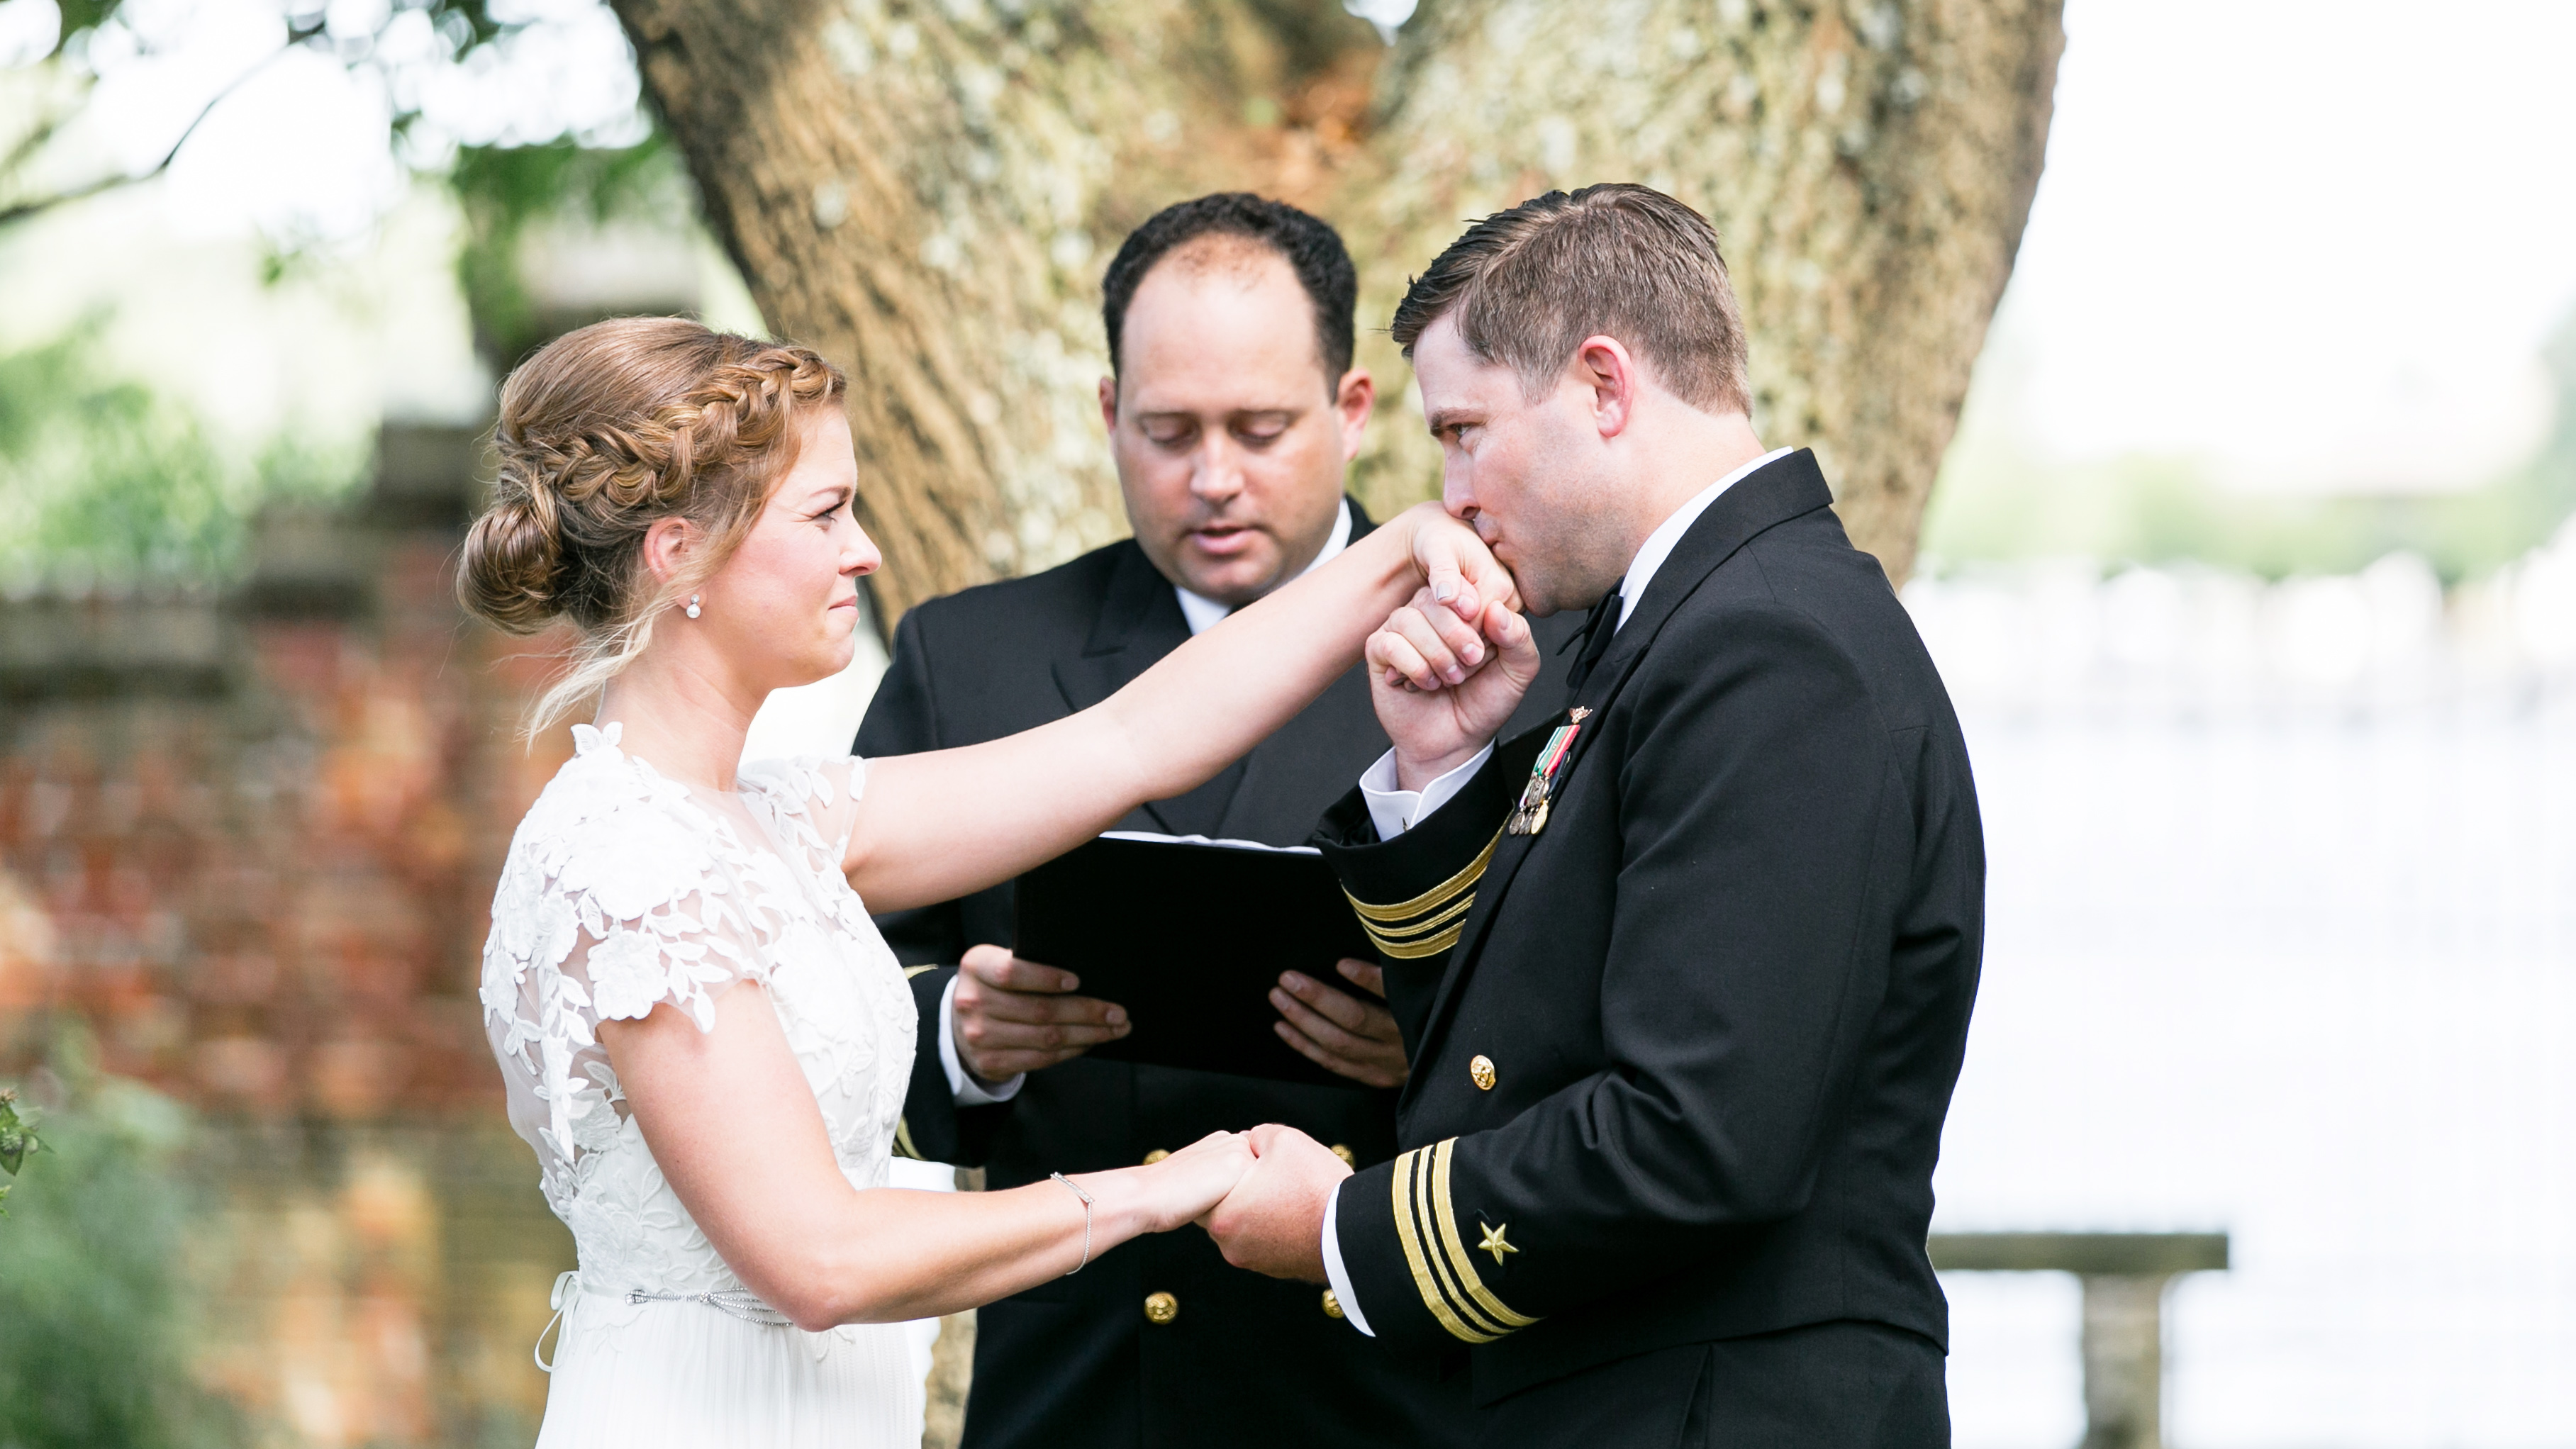 hermitage museum and gardens wedding ceremony norfolk virginia